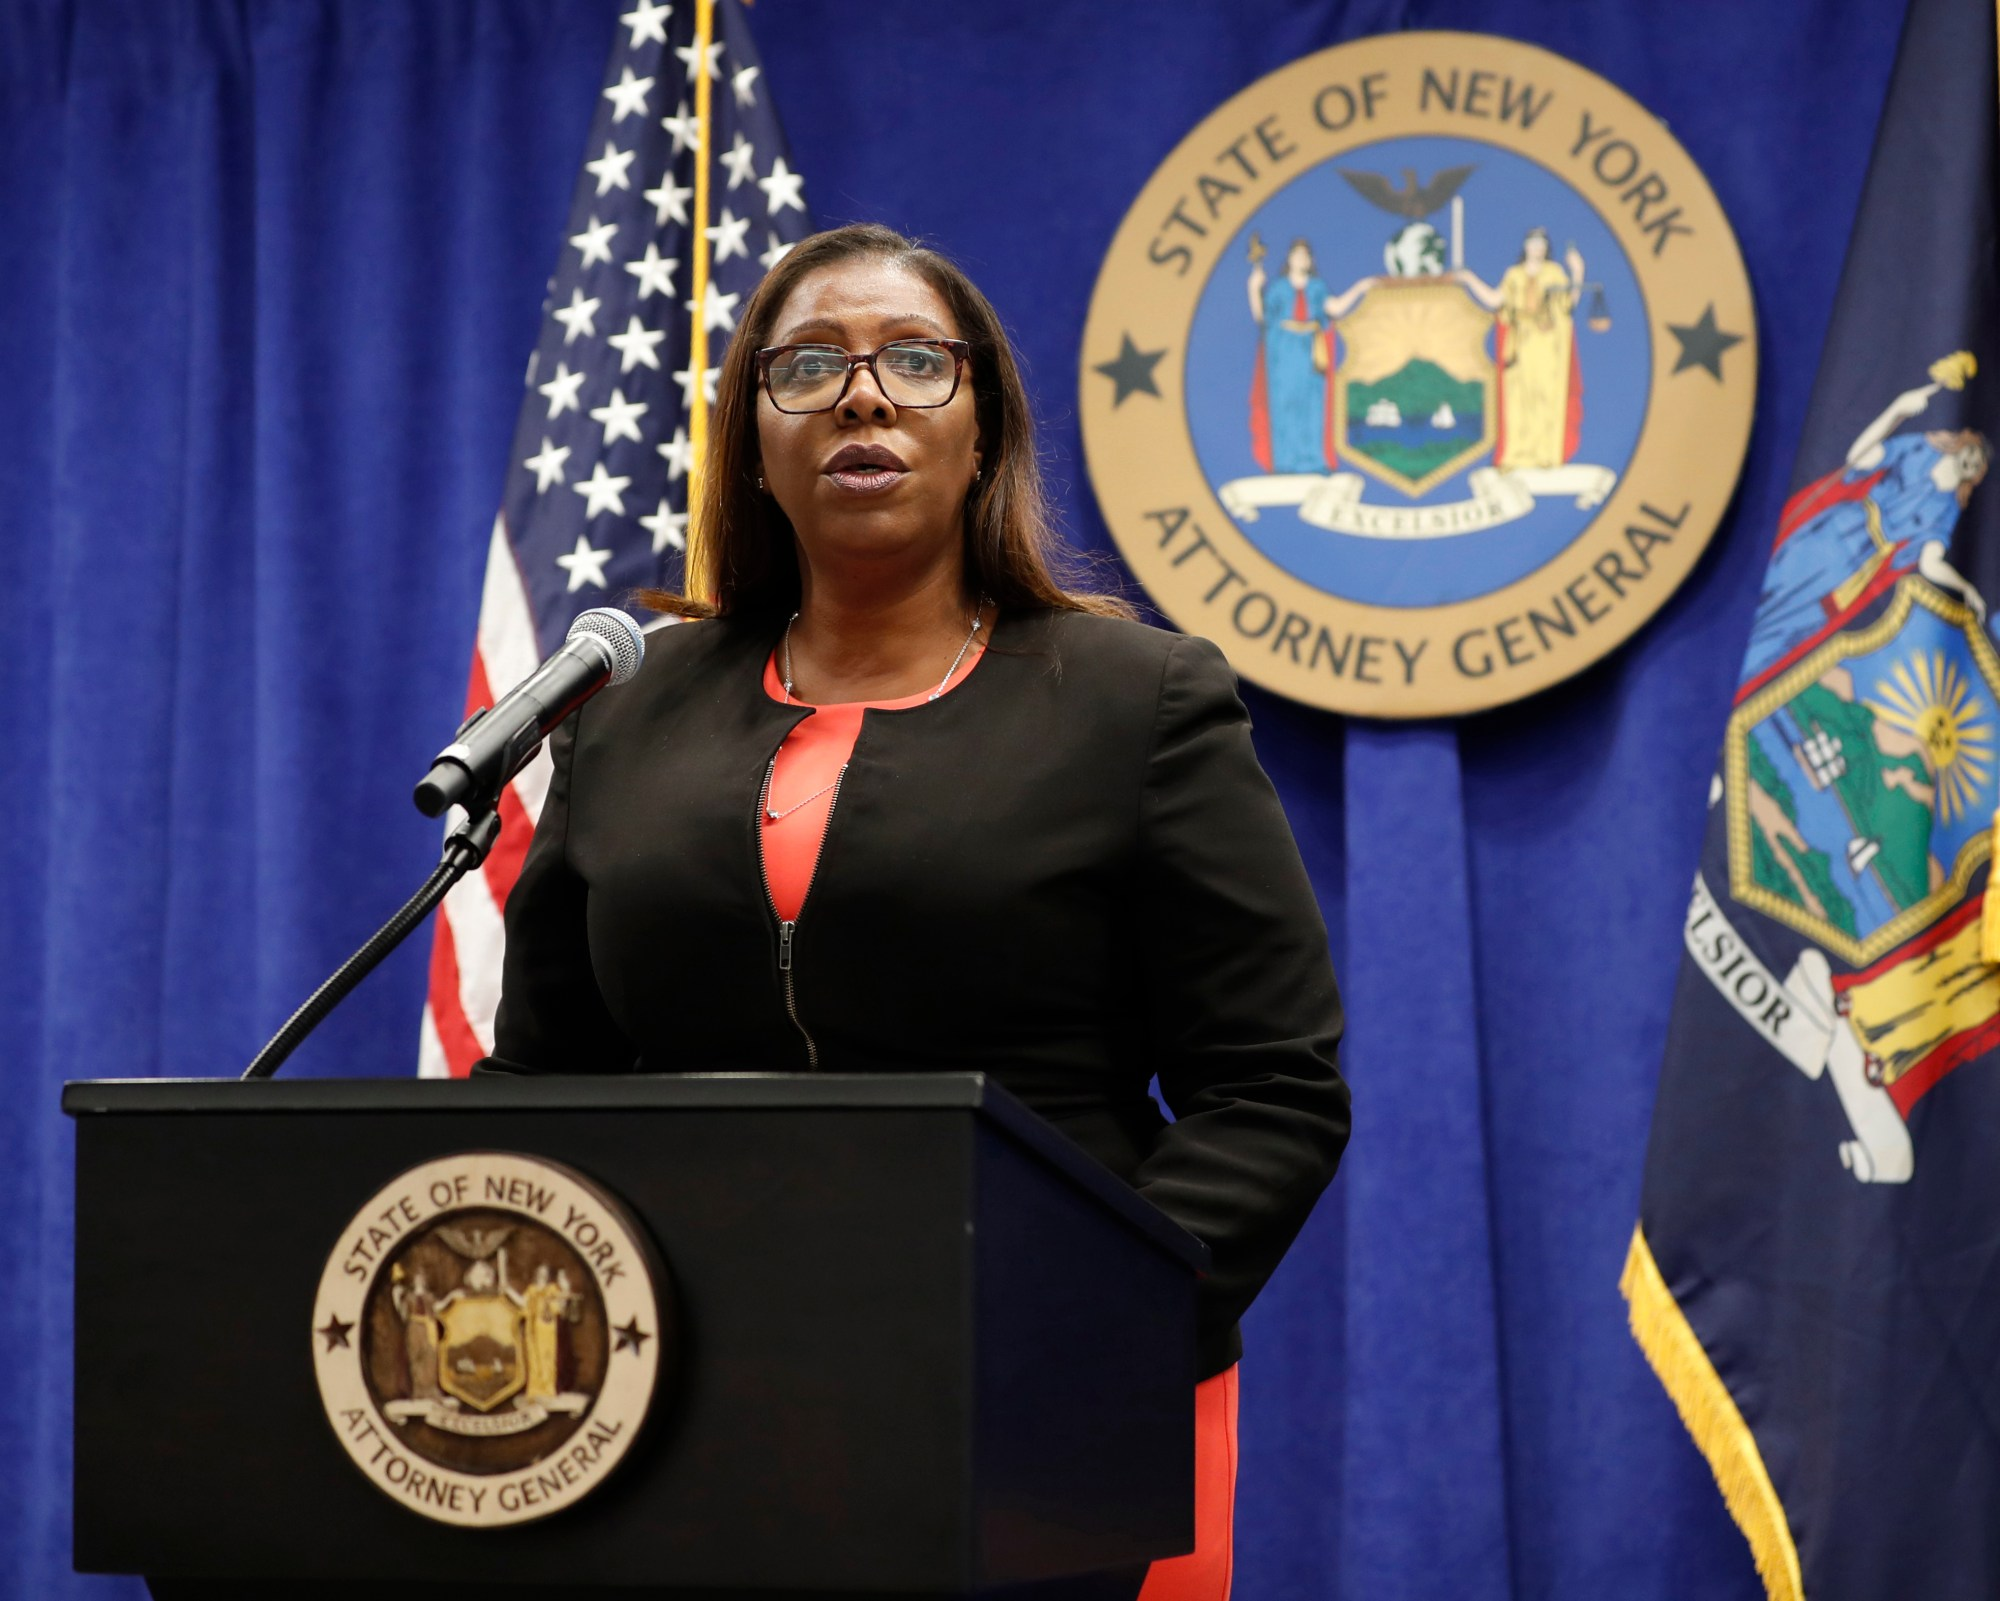 In this Aug. 6, 2020 file photo, New York State Attorney General Letitia James addresses the media during a news conference in New York. On Sept. 25, 2020, James recommended the New York Police Department get out of the business of routine traffic enforcement, a radical change that she said would prevent encounters like one the year before in the Bronx borough of New York that escalated quickly and ended with an officer fatally shooting a motorist. (AP Photo/Kathy Willens, File)